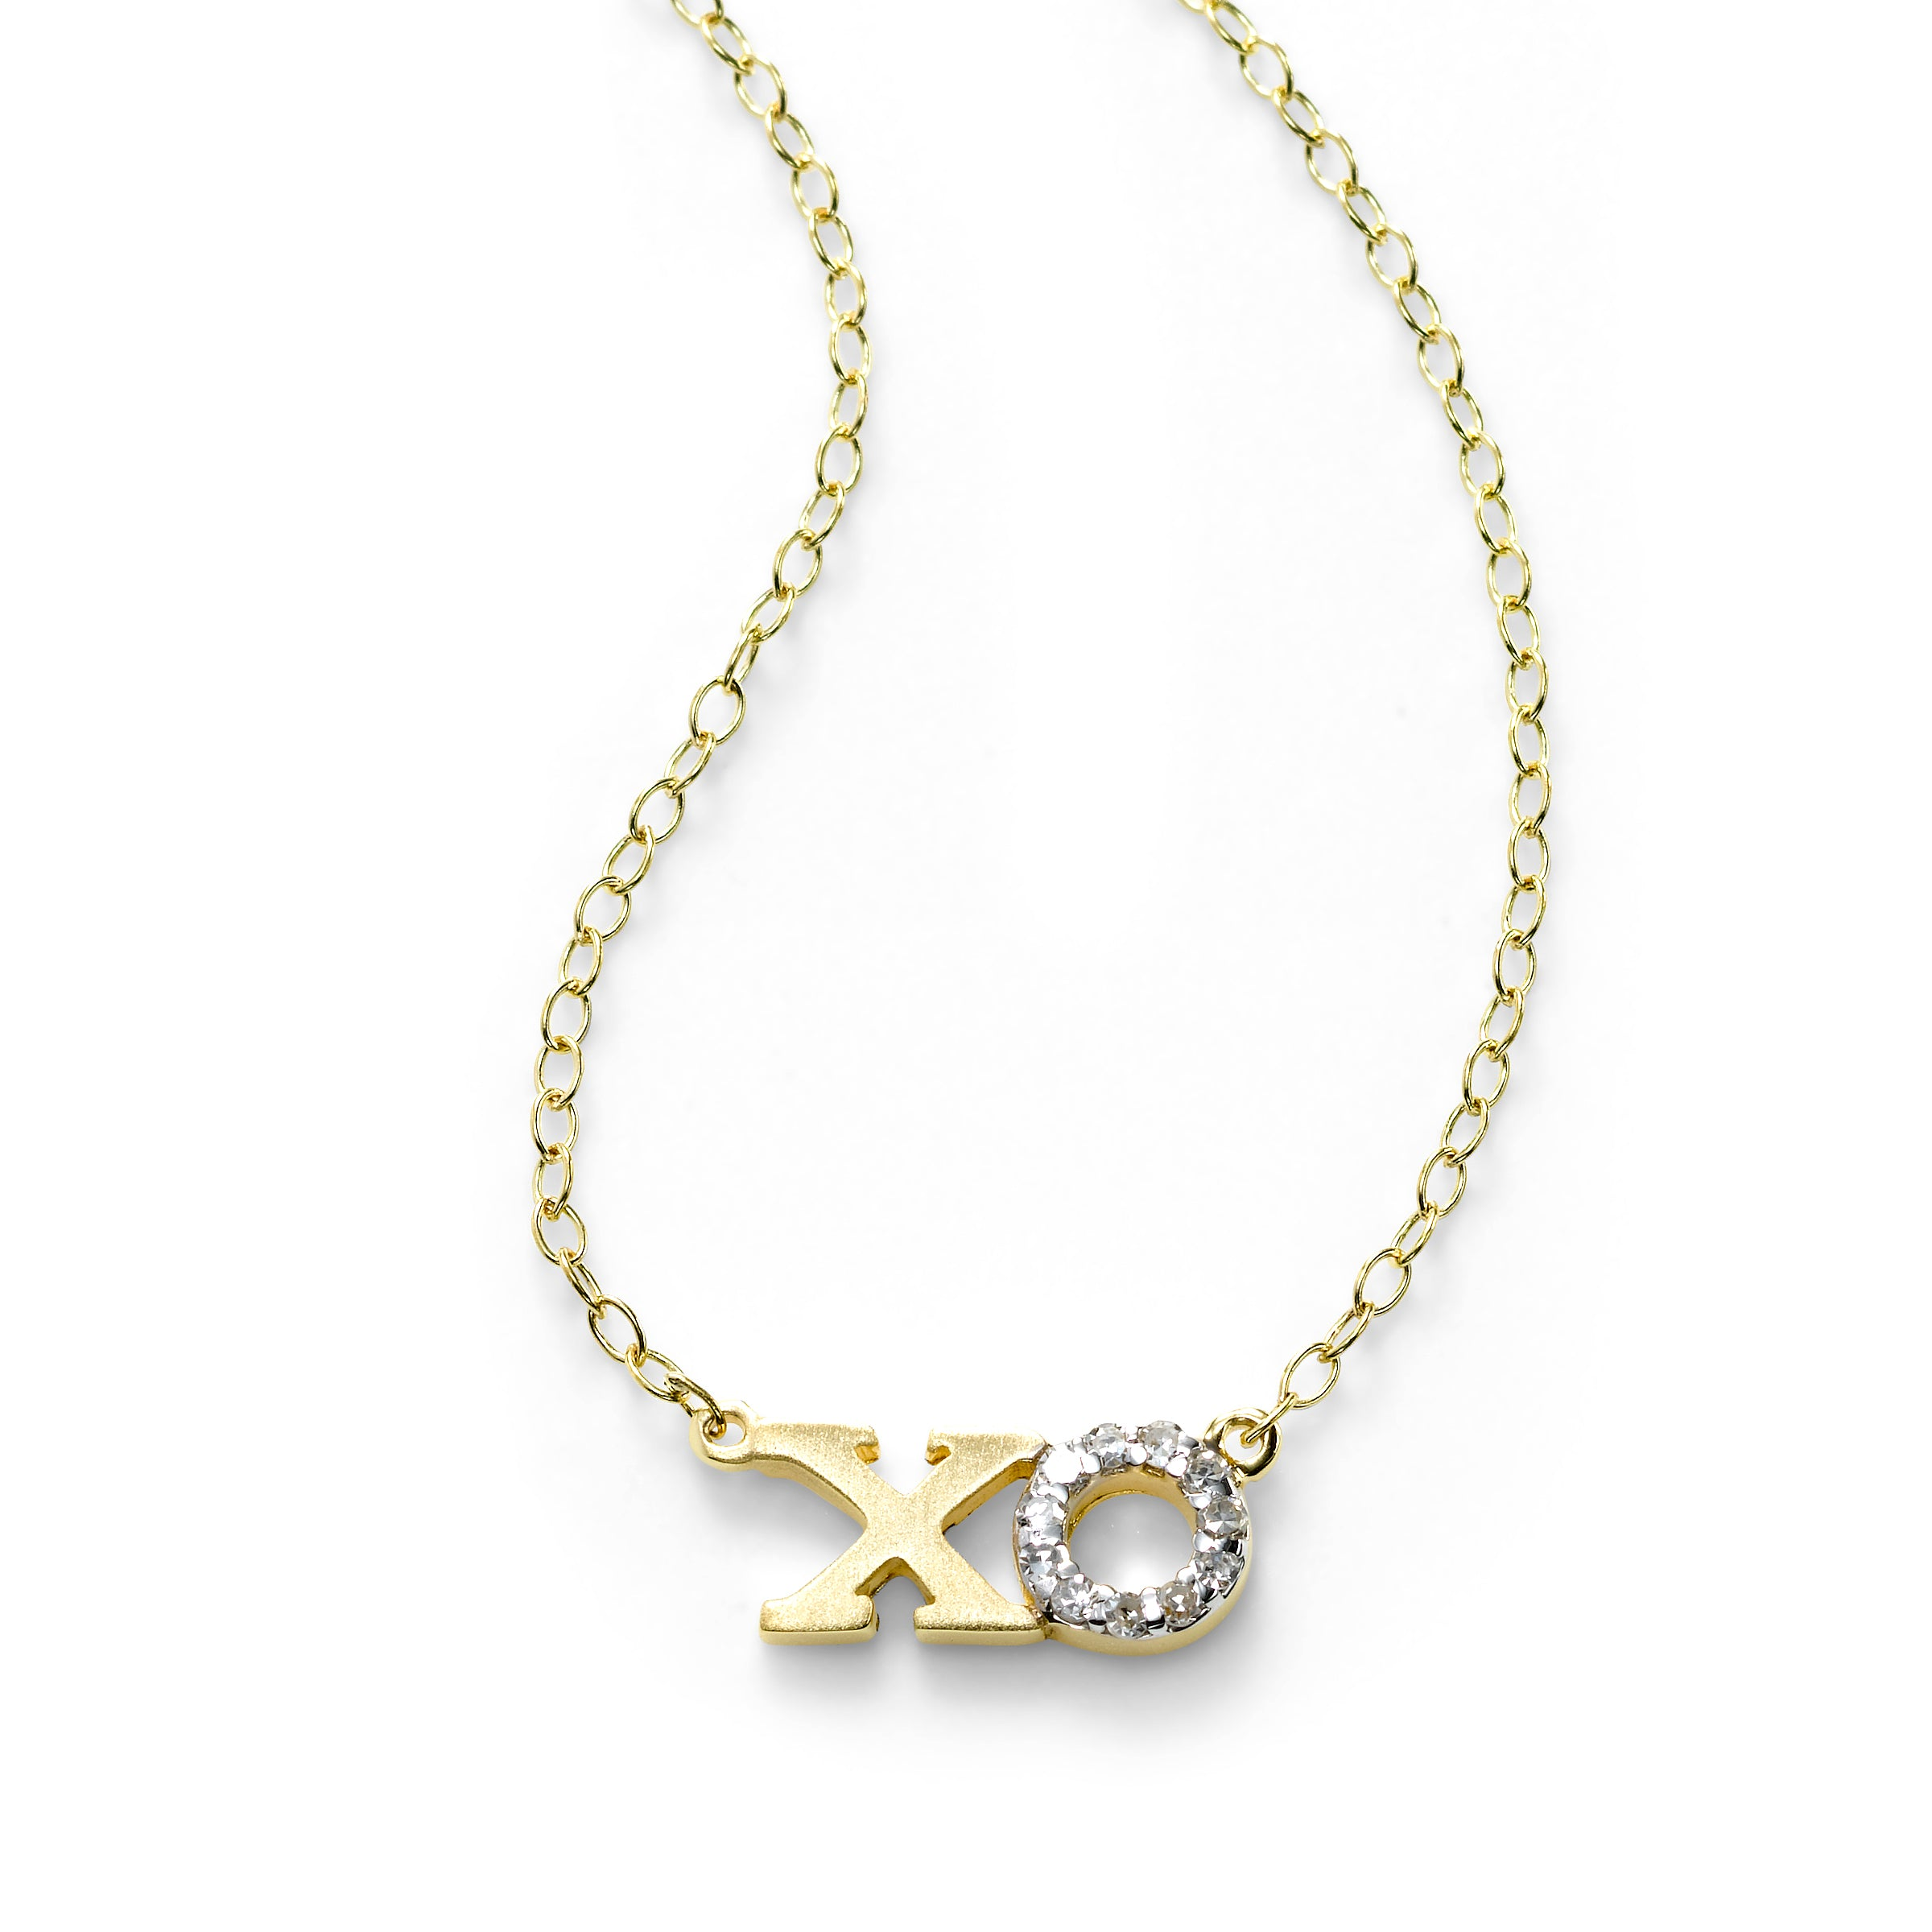 XO Necklace with Diamonds, 14K Yellow Gold